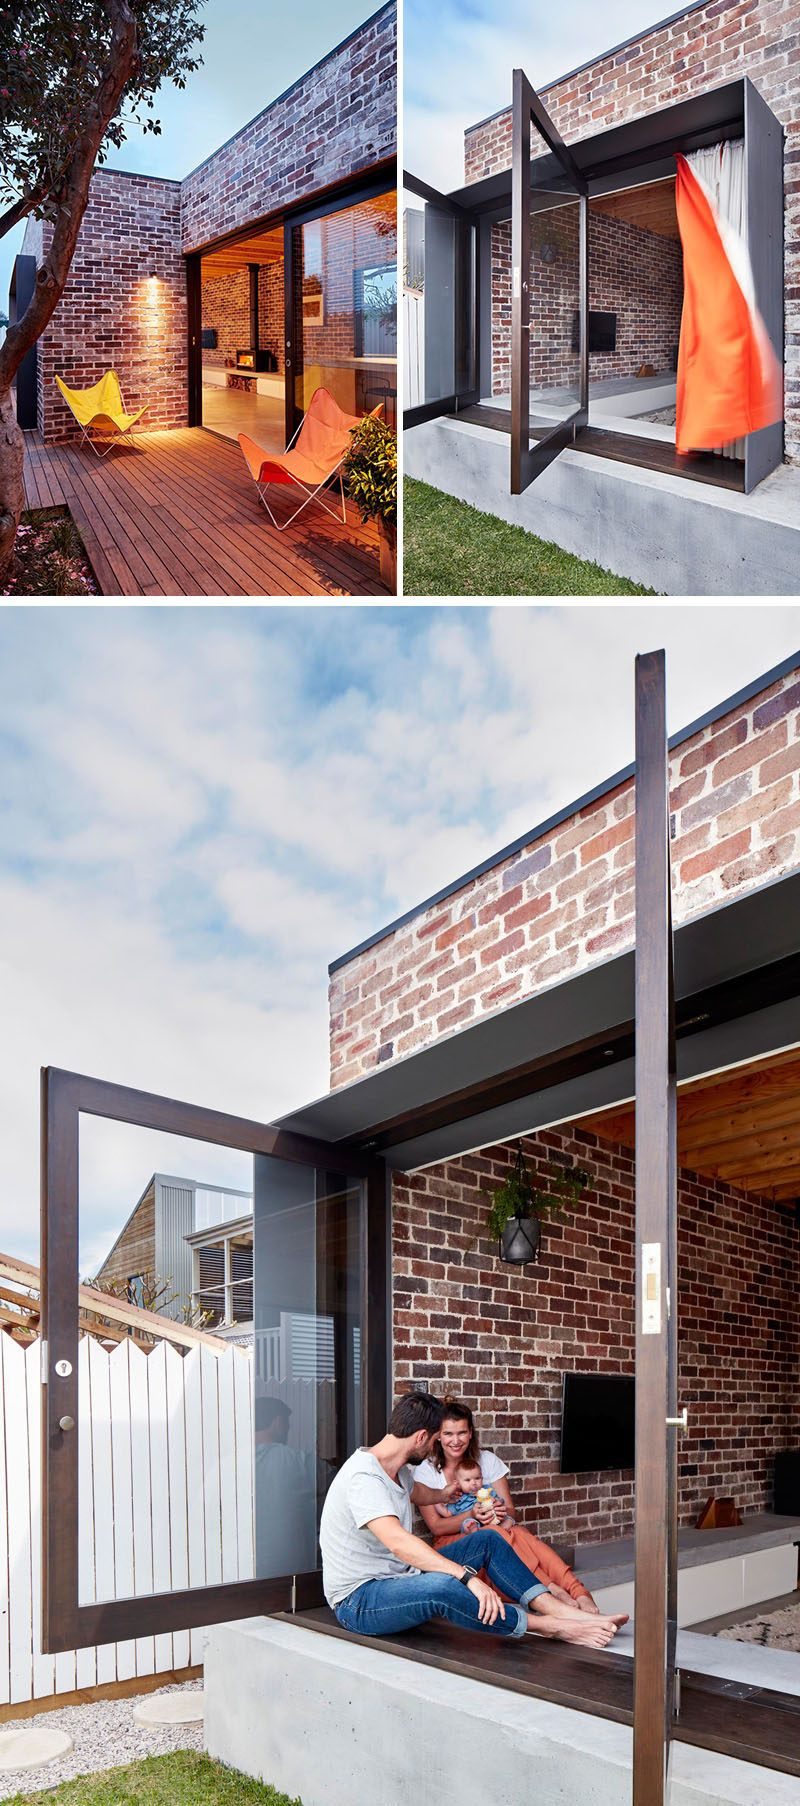 14 modern houses made of brick this small family home is covered with bricks that contrast the modern features of the house like the large pivoting